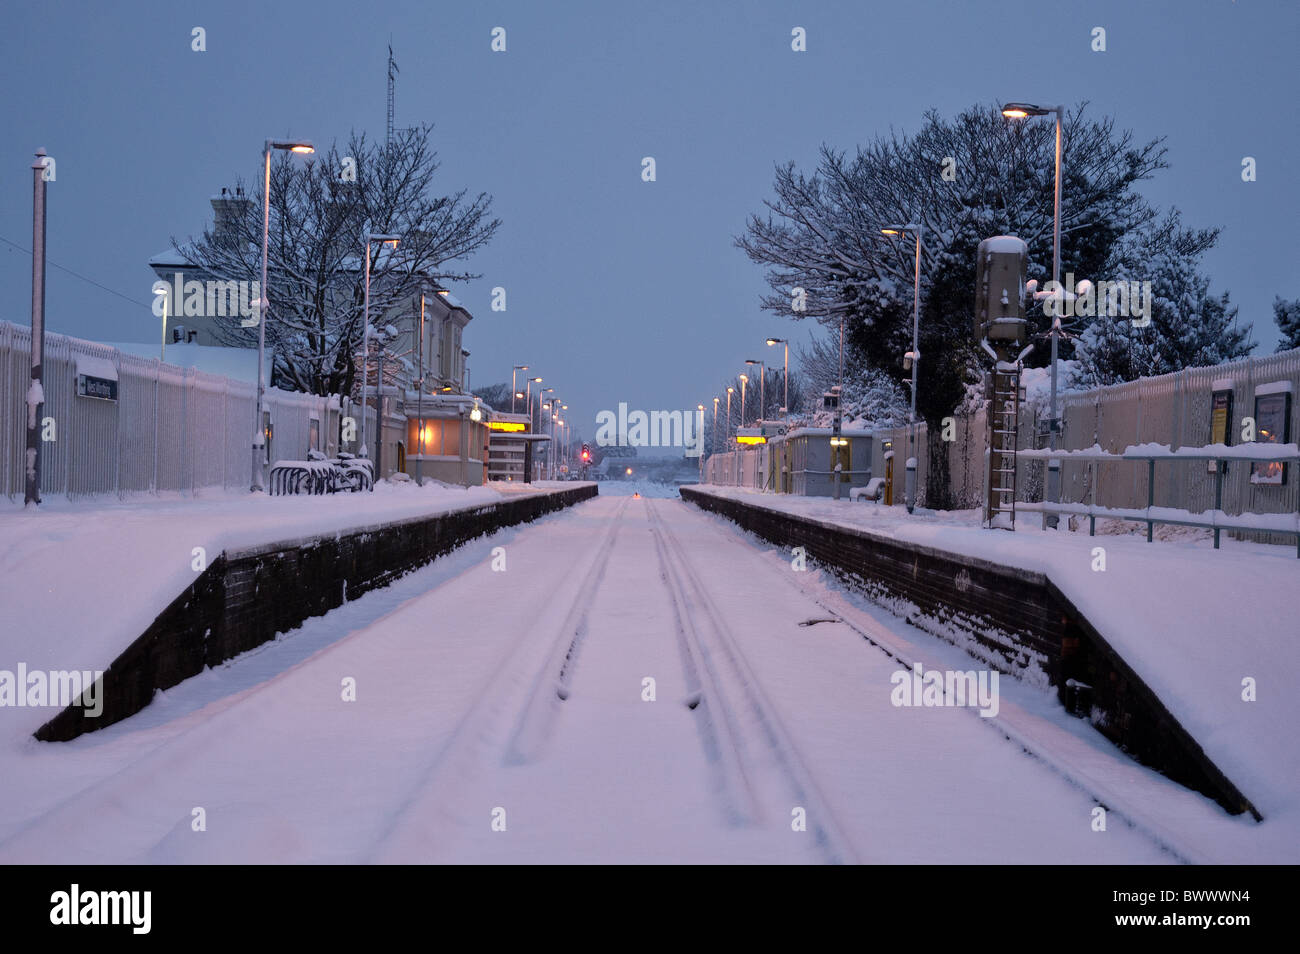 Southern Railways have canceled all trains until at least mid-morning. Worthing station remains closed. - Stock Image